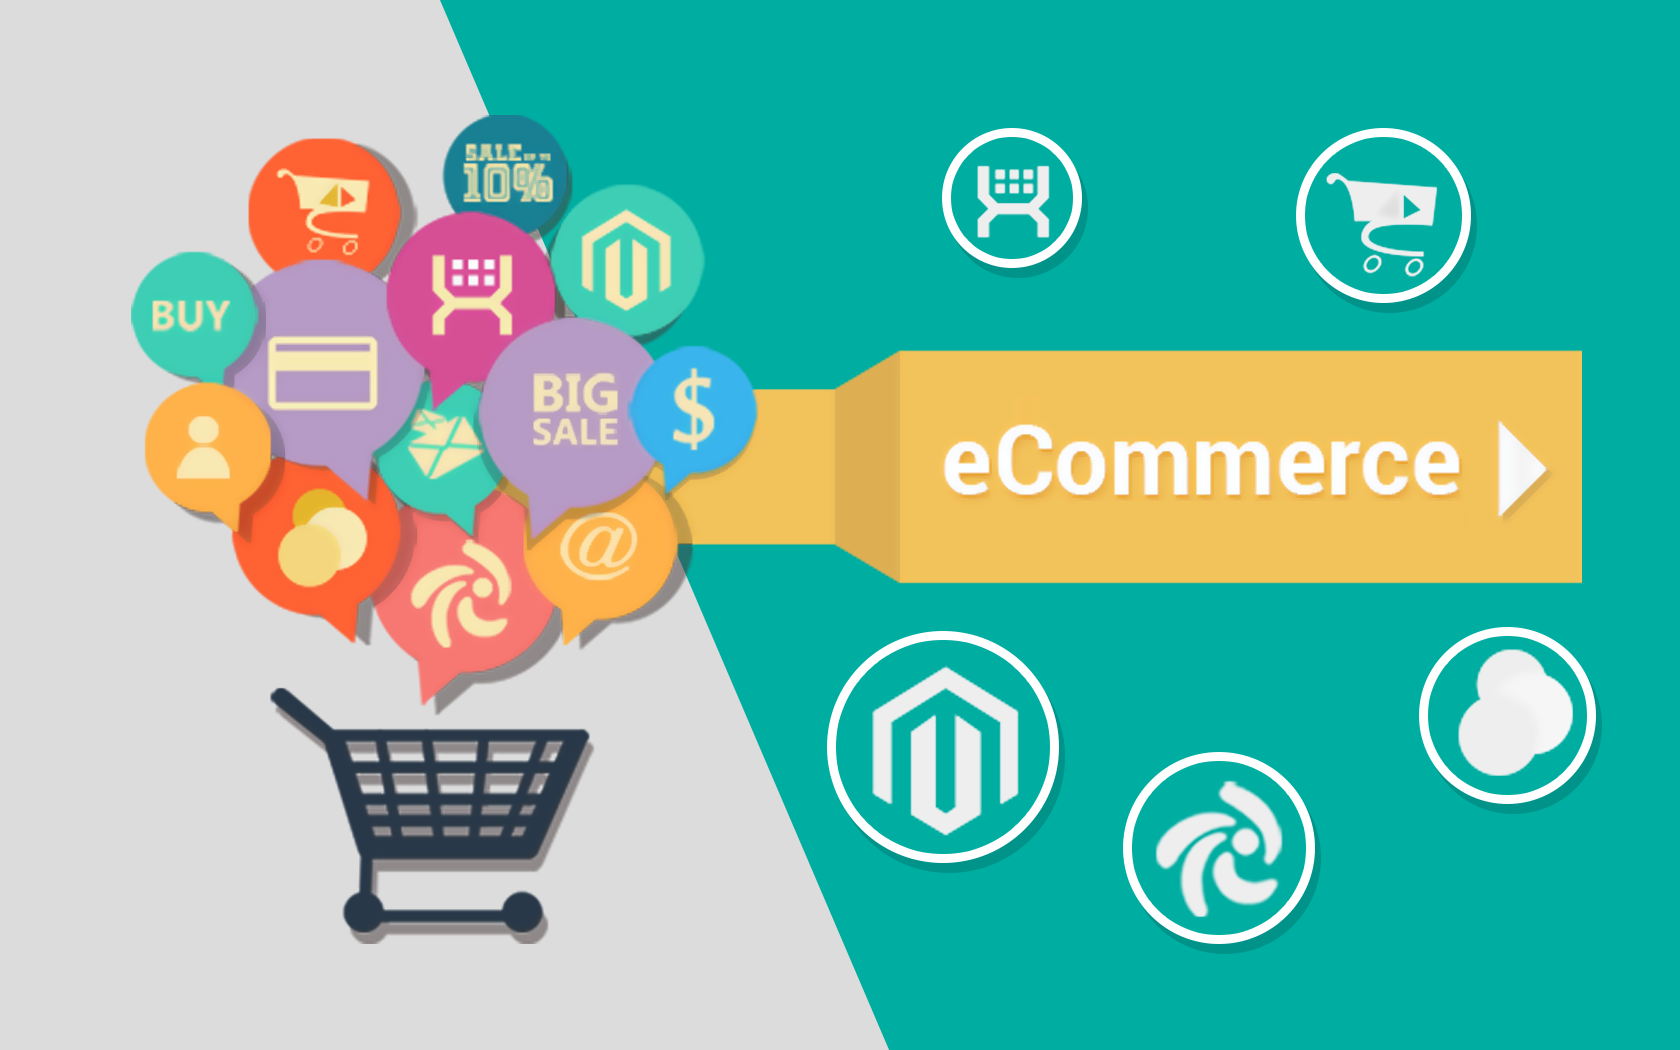 1123439898indian-products-reaching-the-global-market-through-e-commerce.png